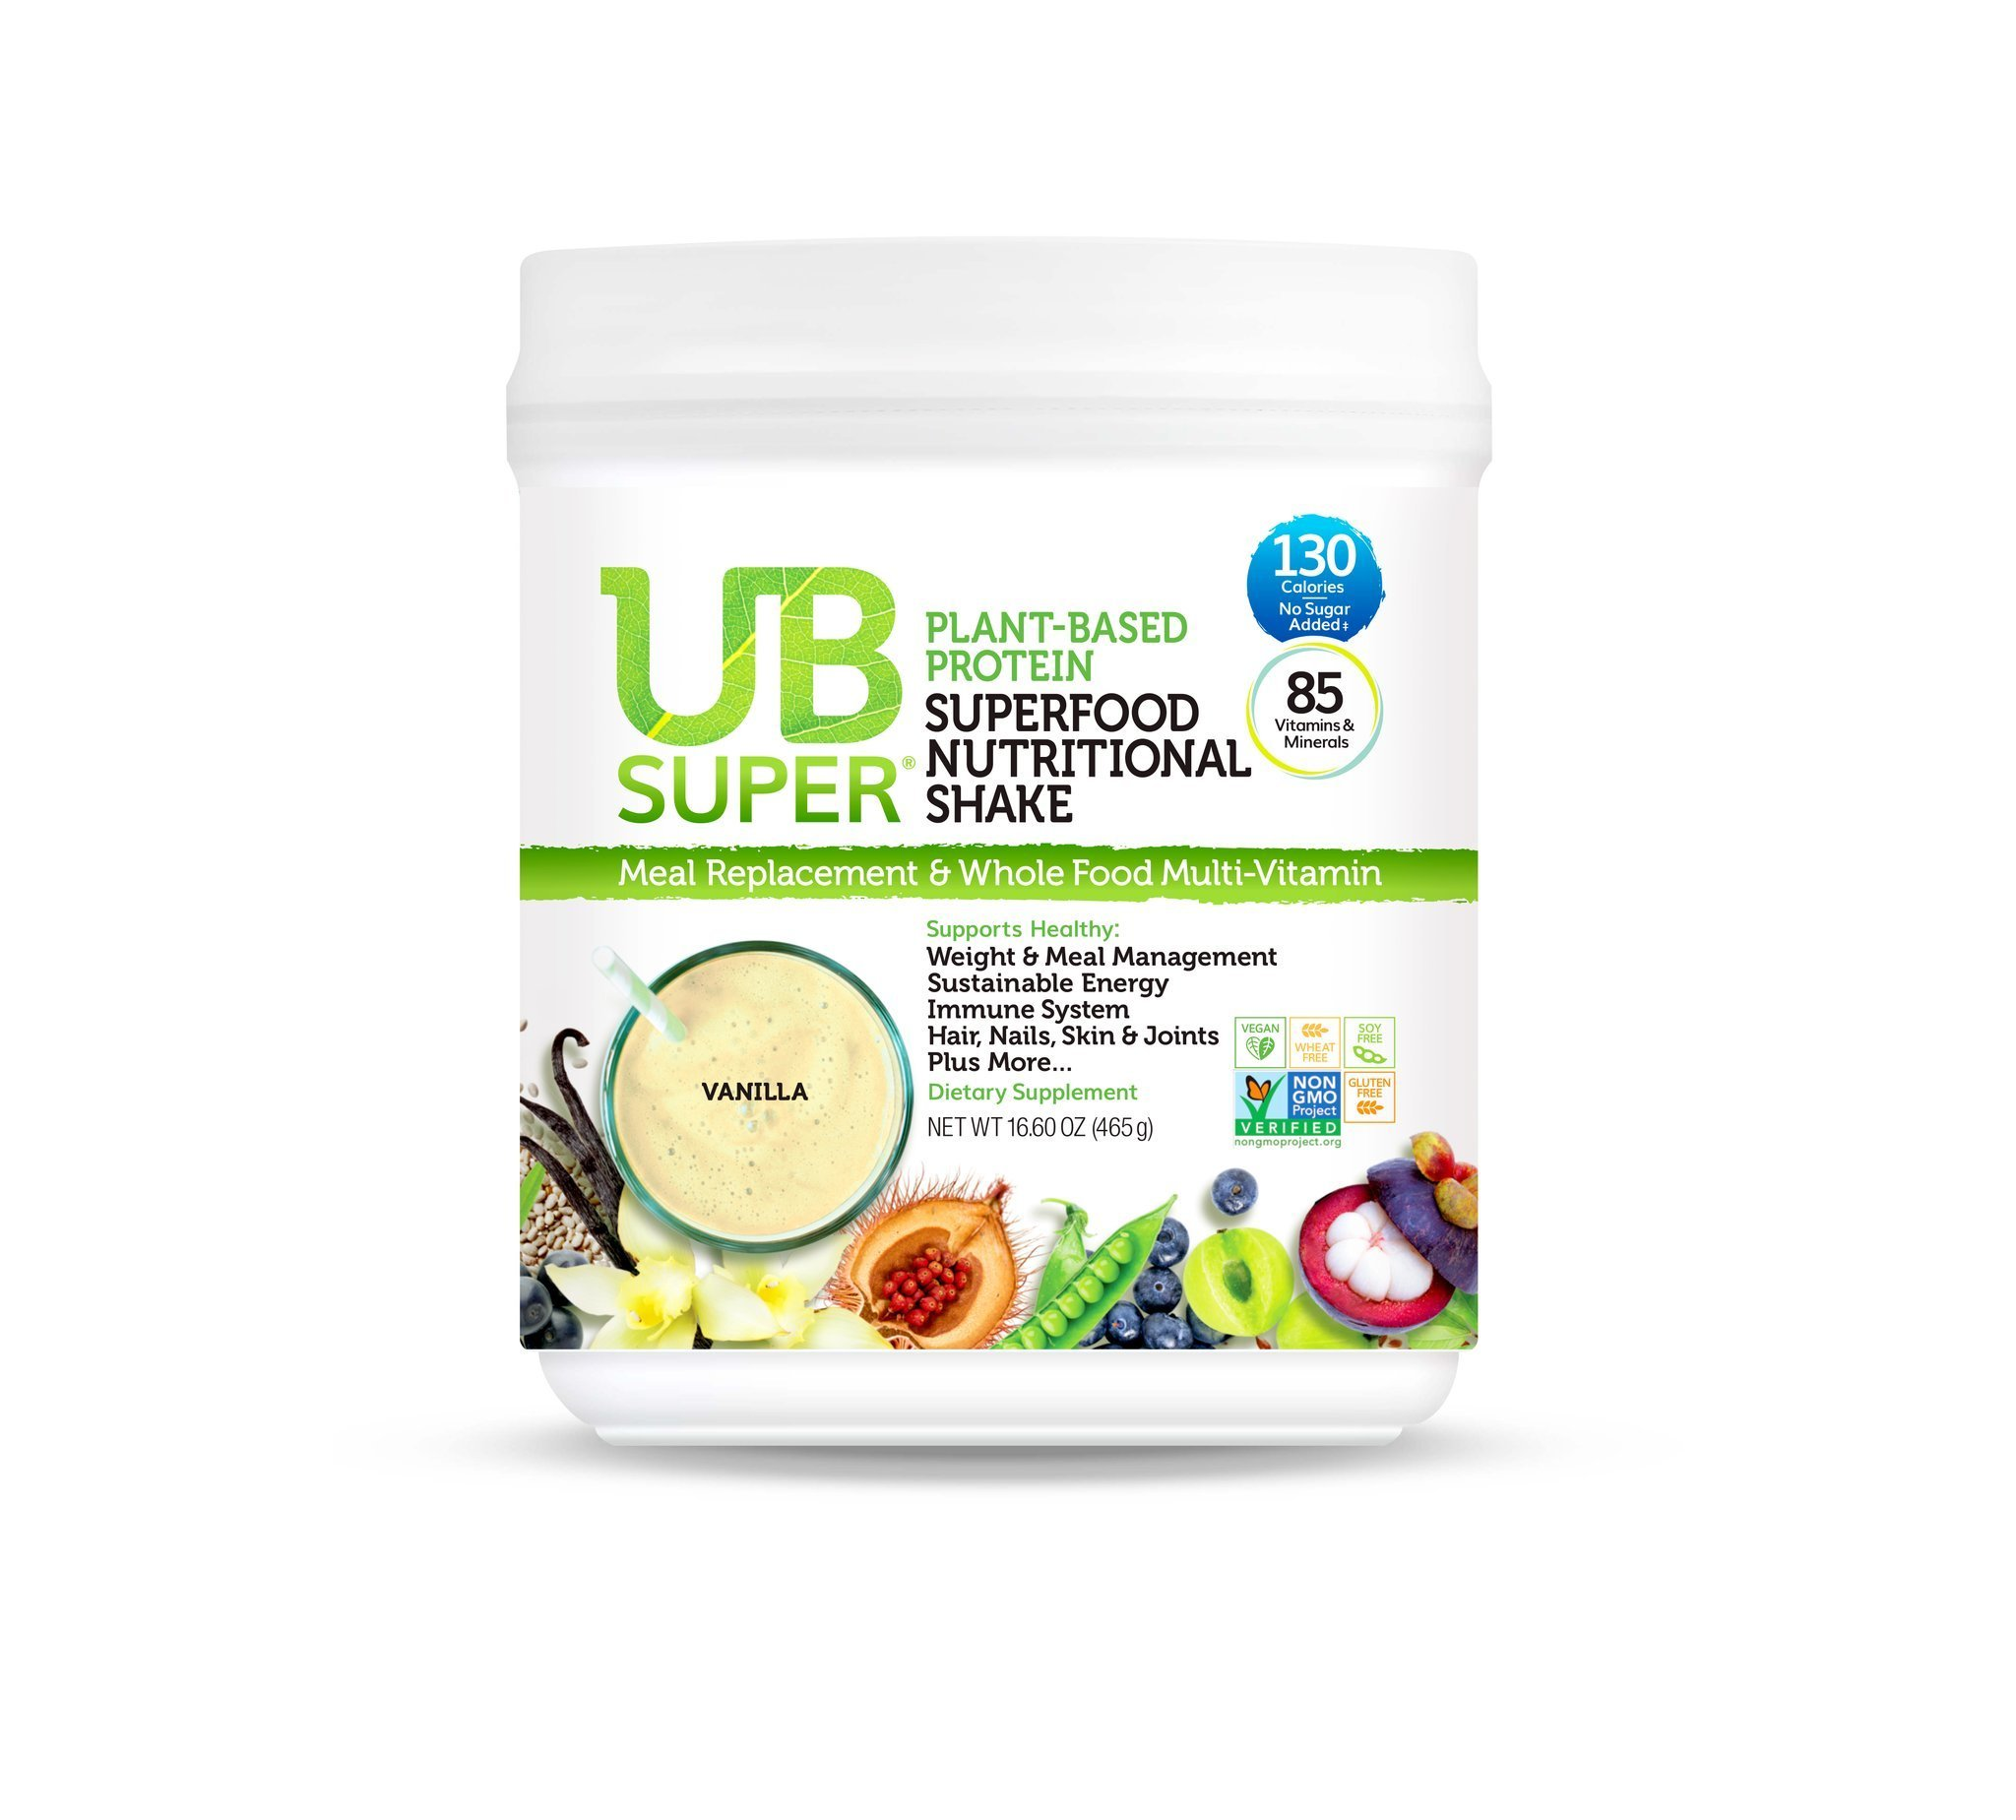 UB Super - Meal Replacement - Protein Superfood Nutritional Shake - Vegan, Gluten Free, Non GMO, No Added Sugar, Nutrient Rich - Dietary Supplement (Vanilla, Plant-Based) by UB Super